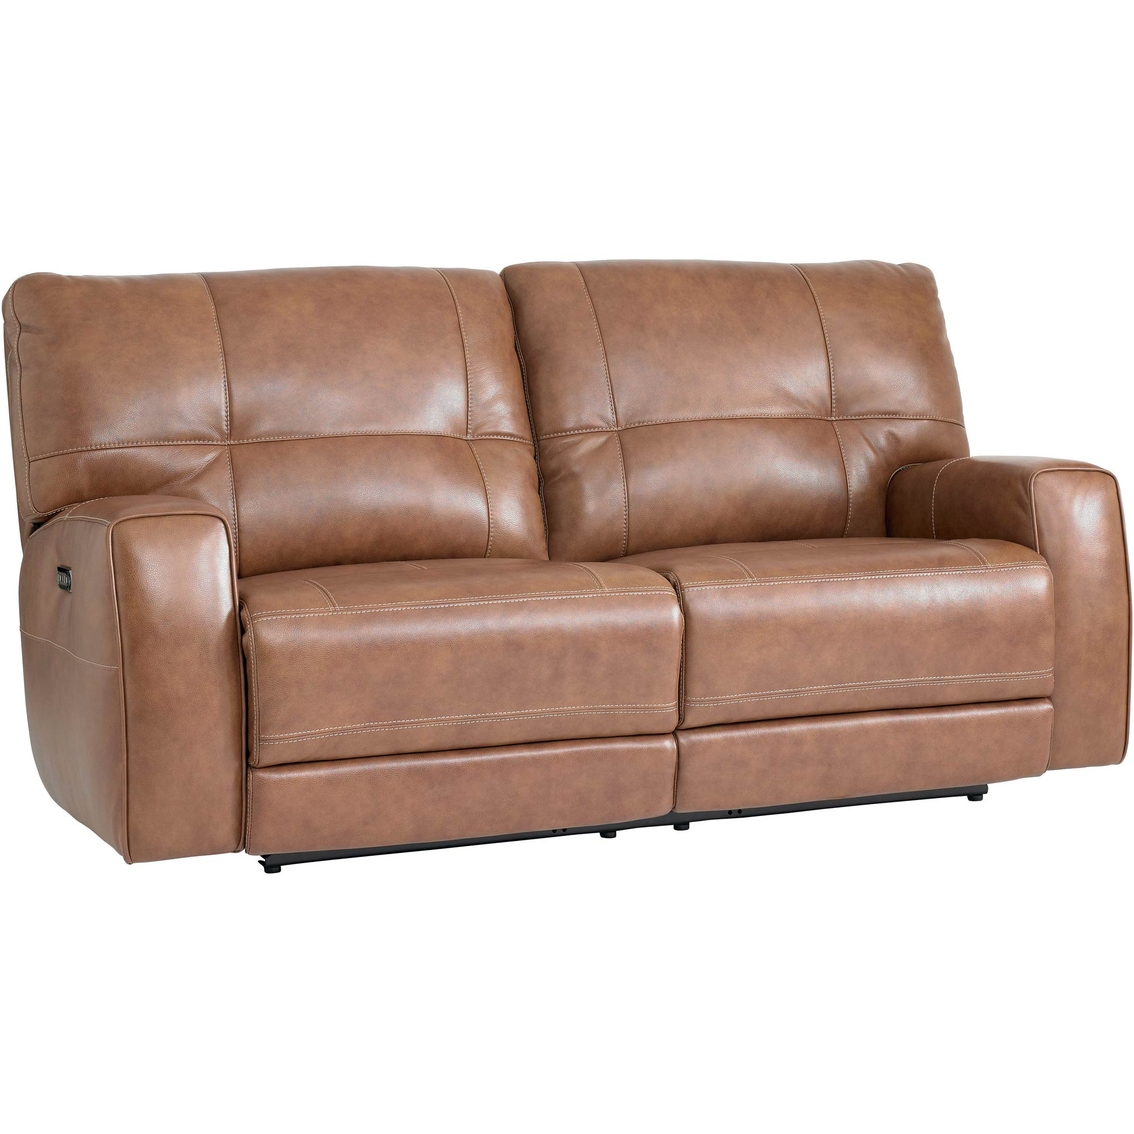 Bassett Conway Power Reclining Sofa